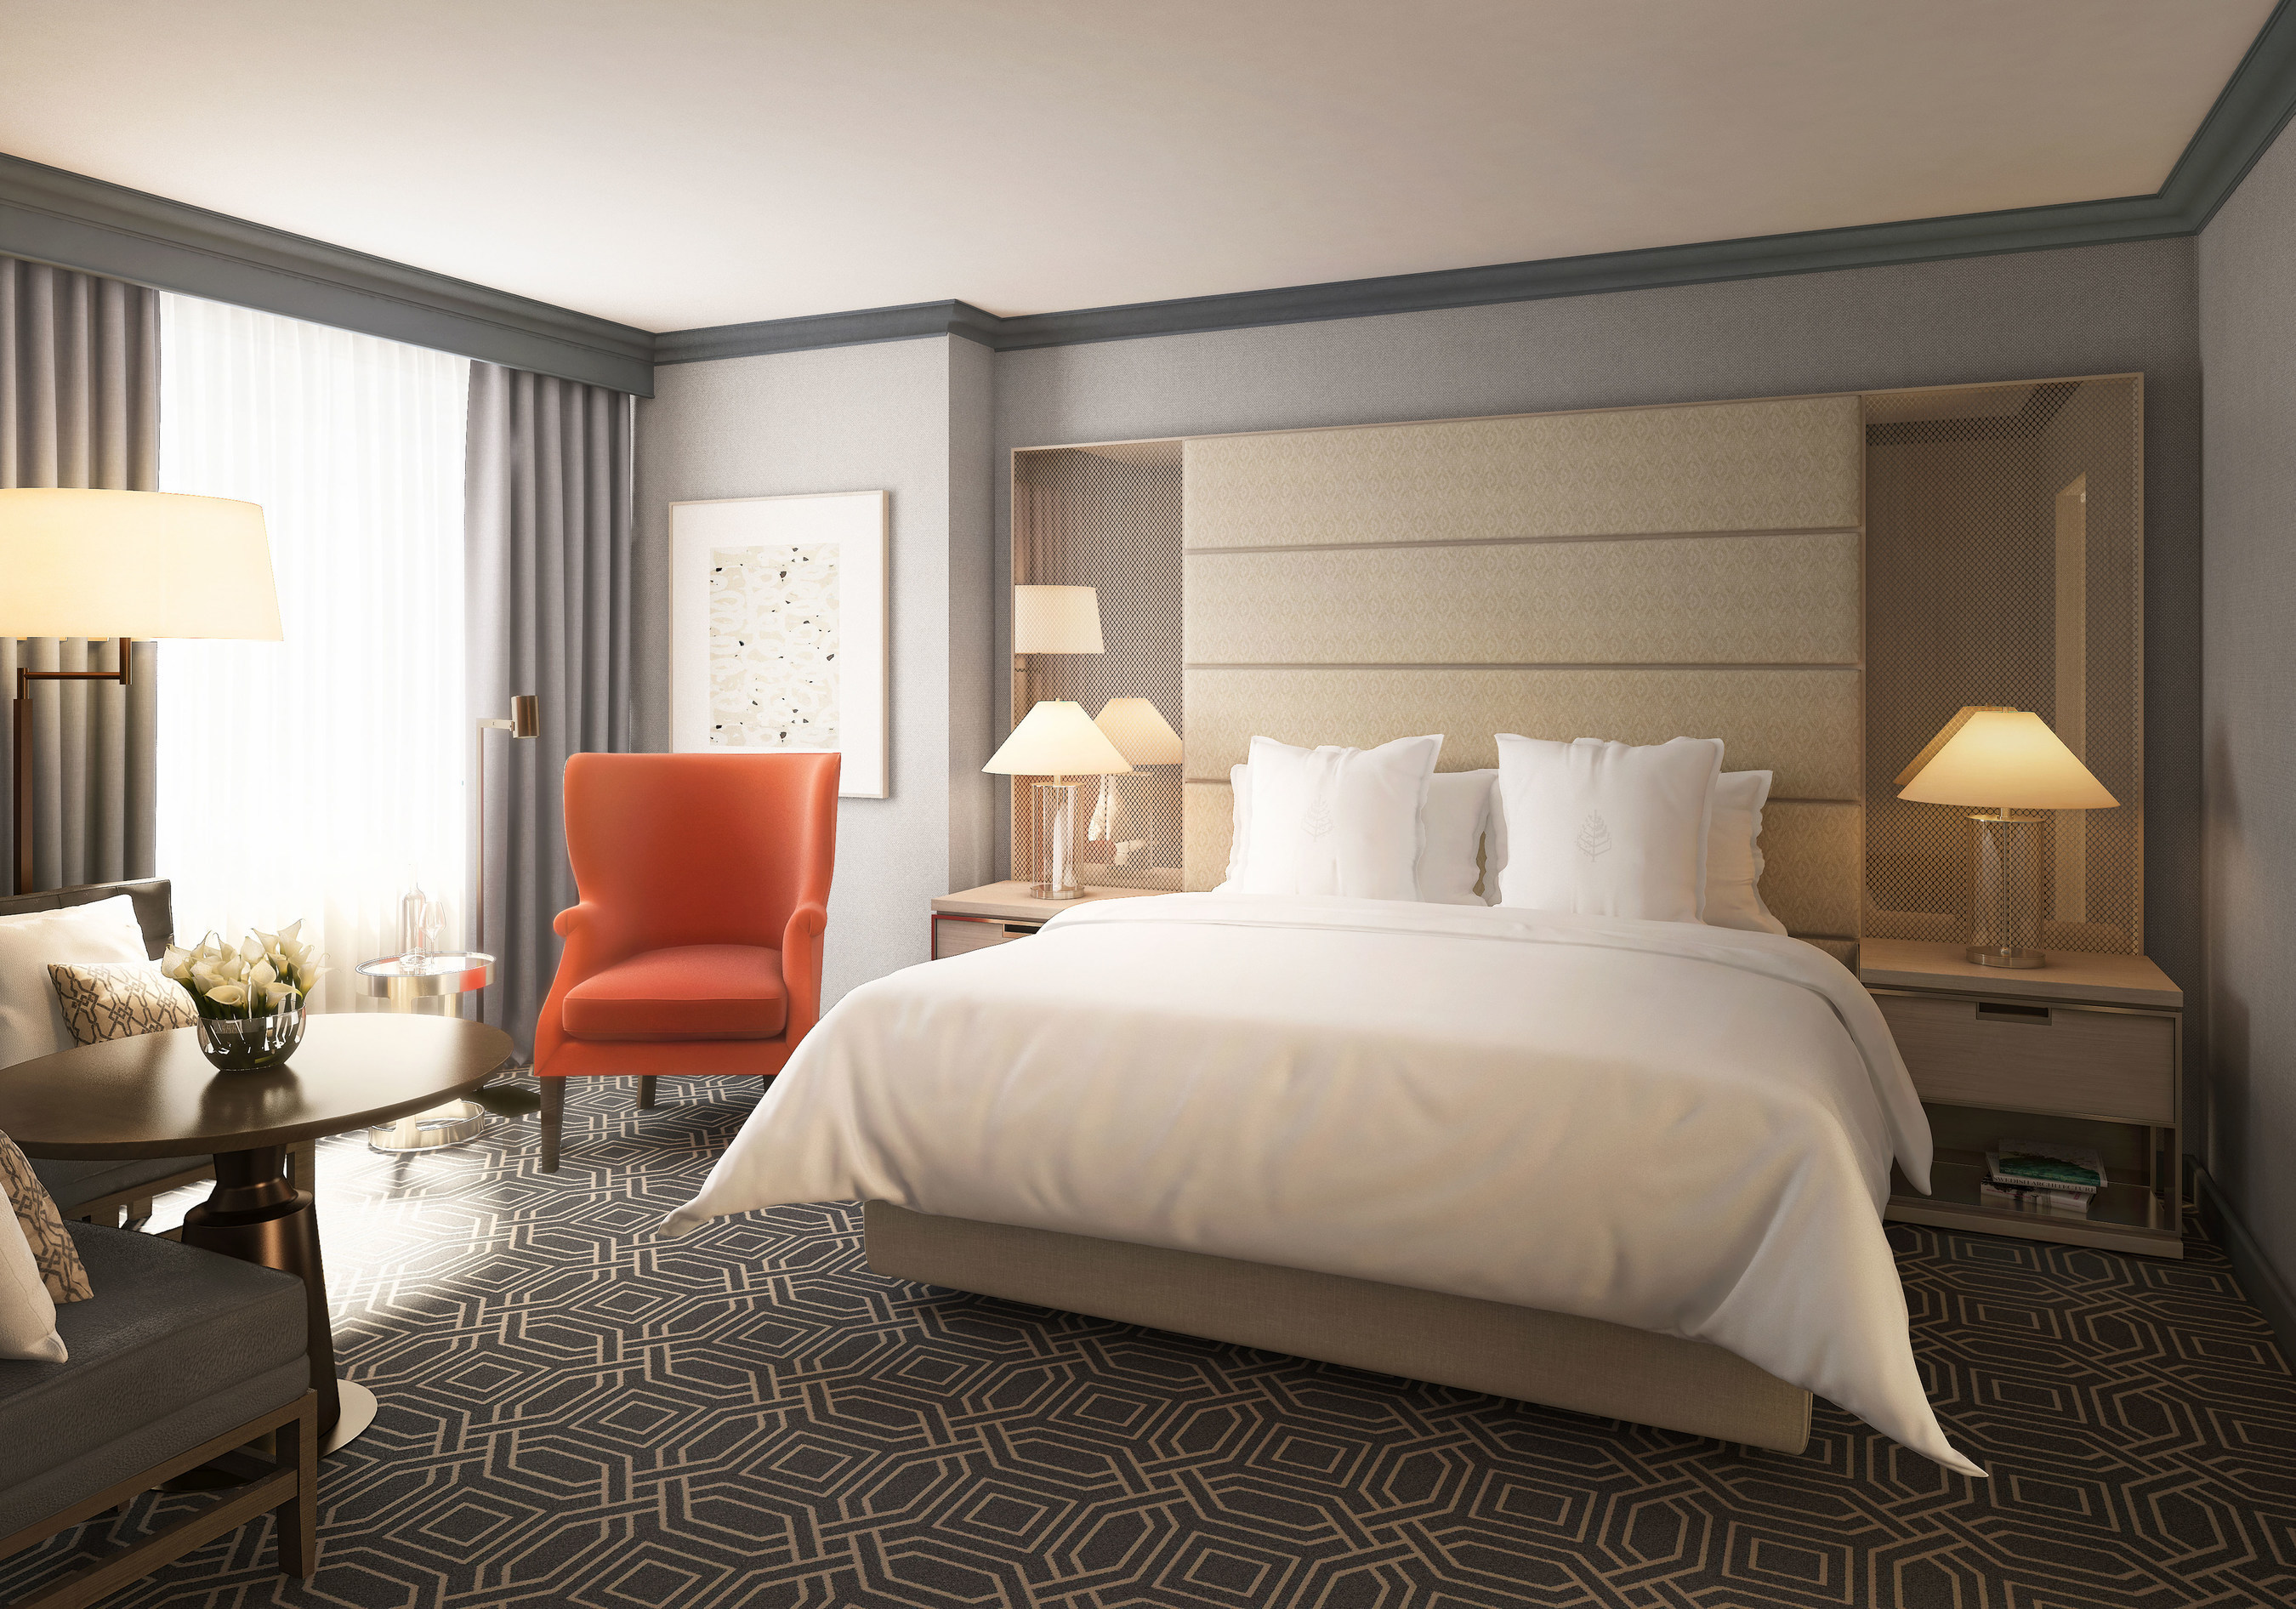 Four seasons hotel atlanta announces a luxe room refresh with modern